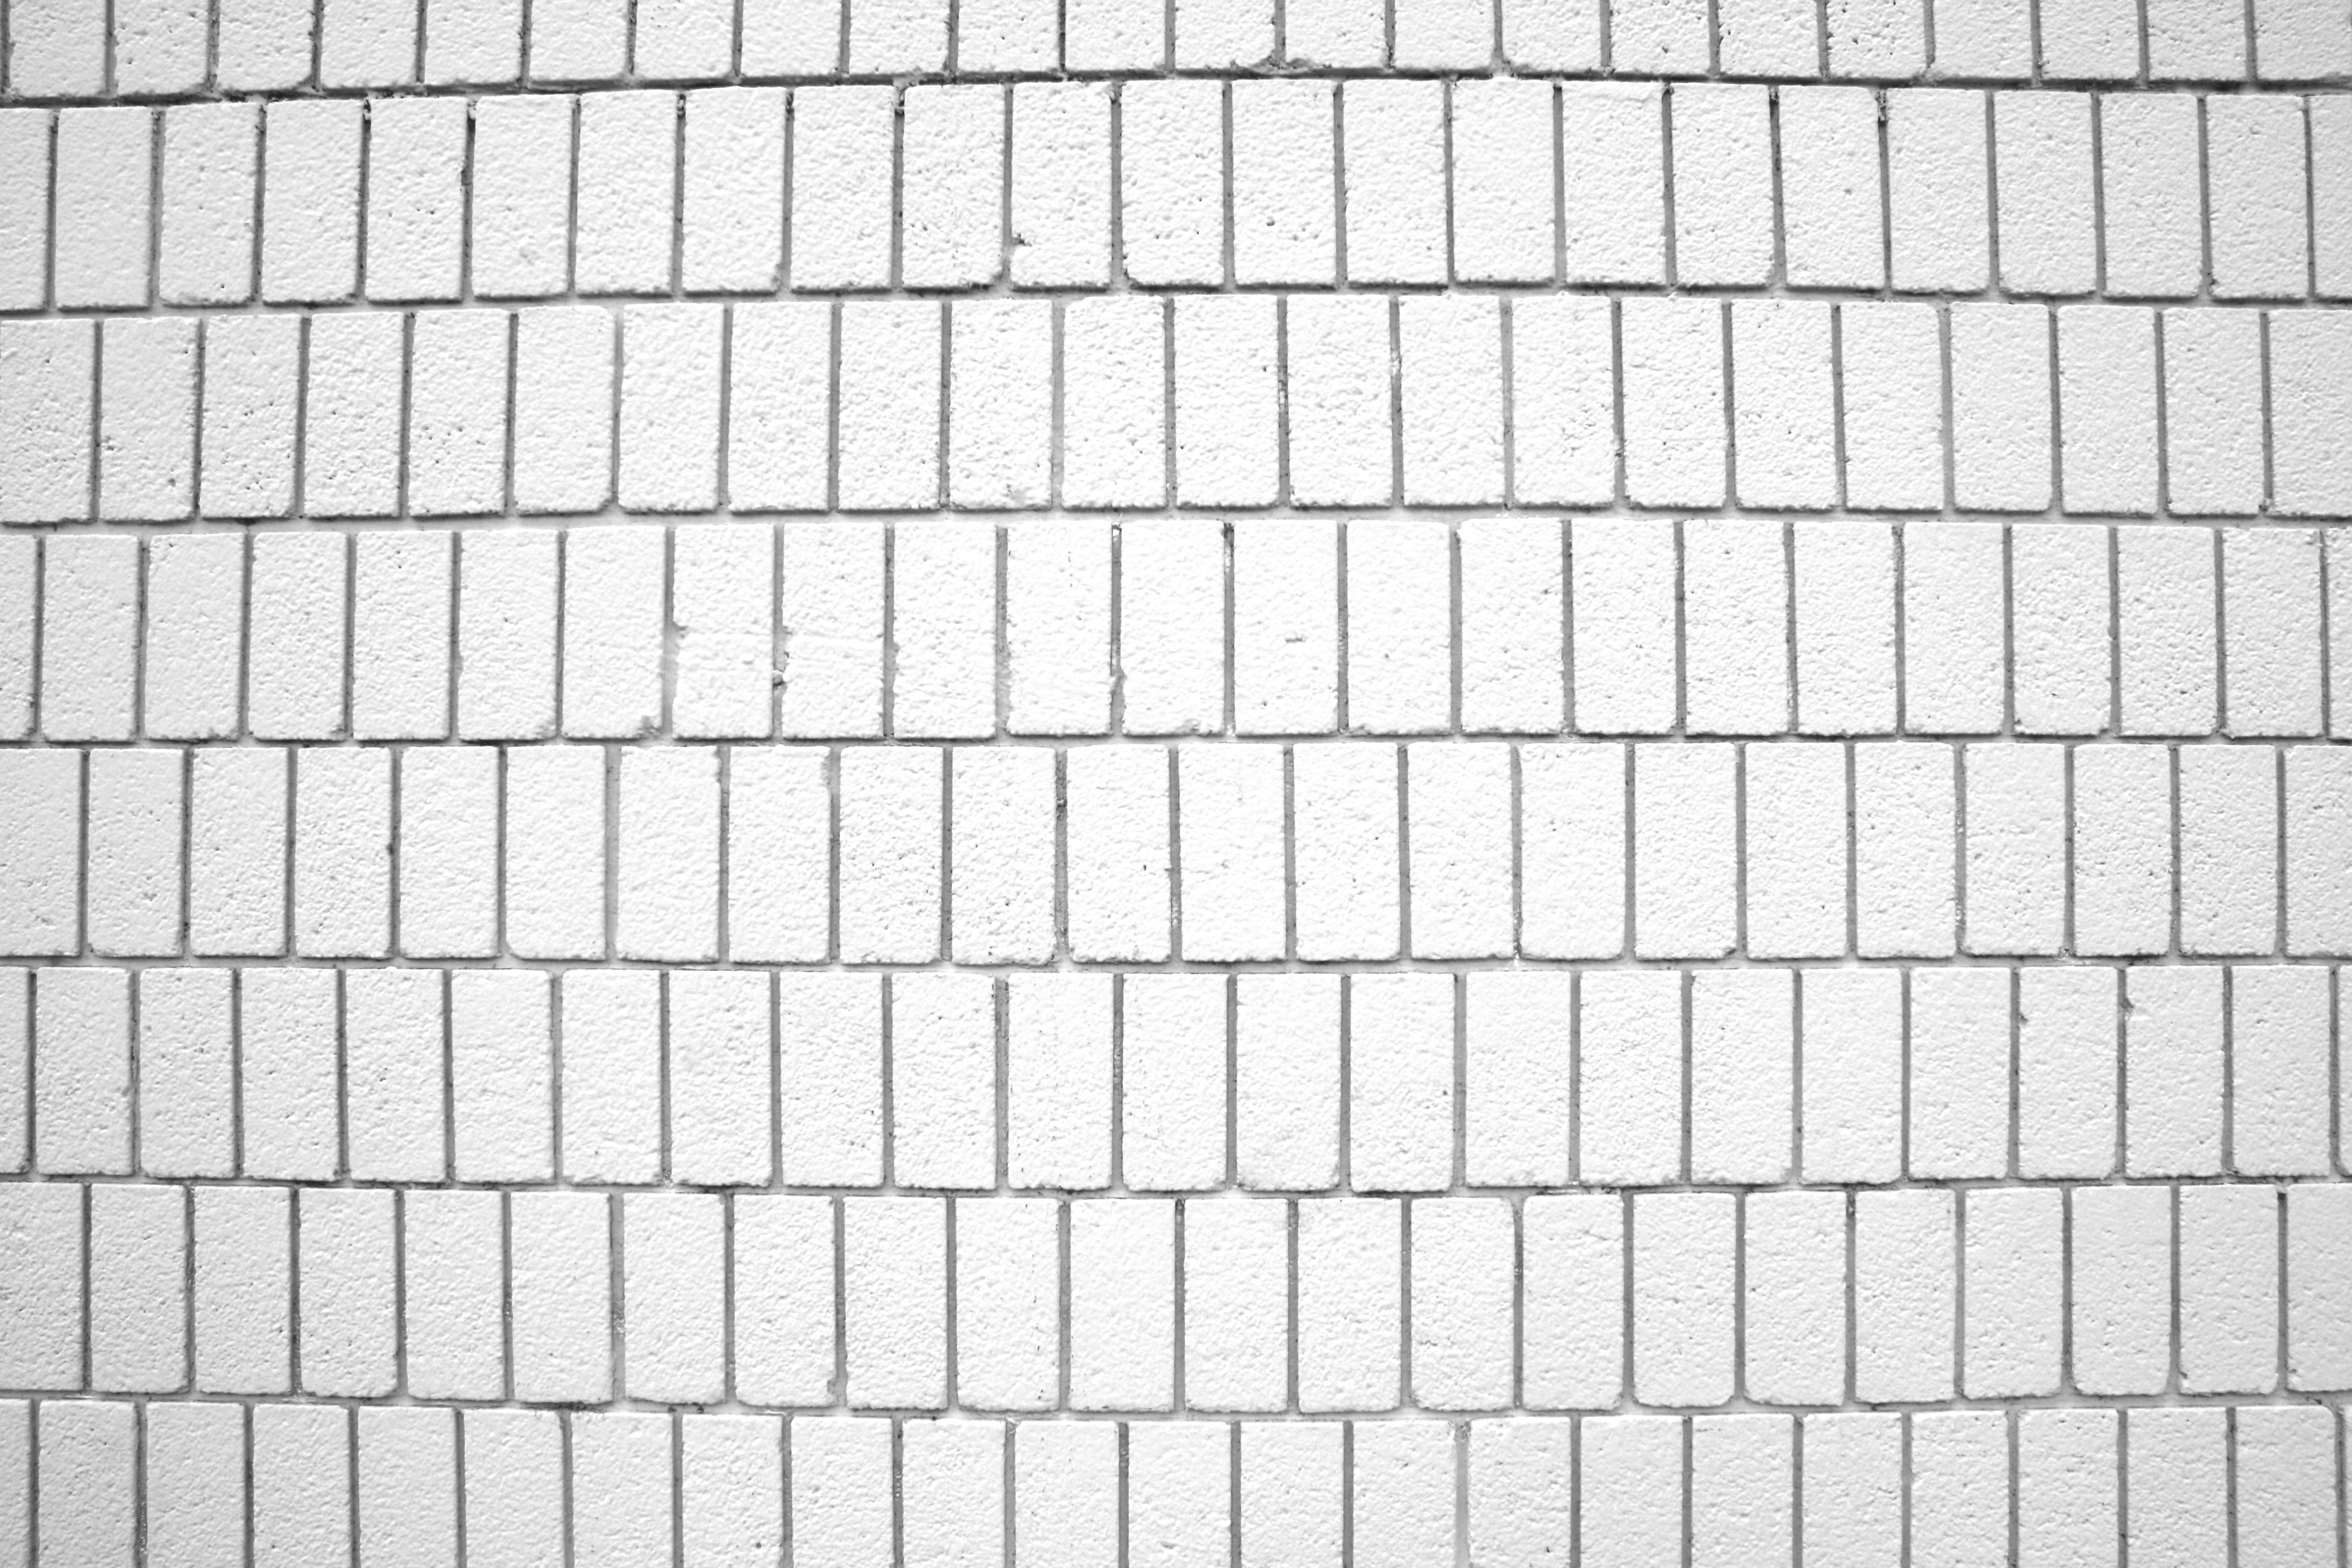 White Brick Wall Texture With Vertical Bricks Picture